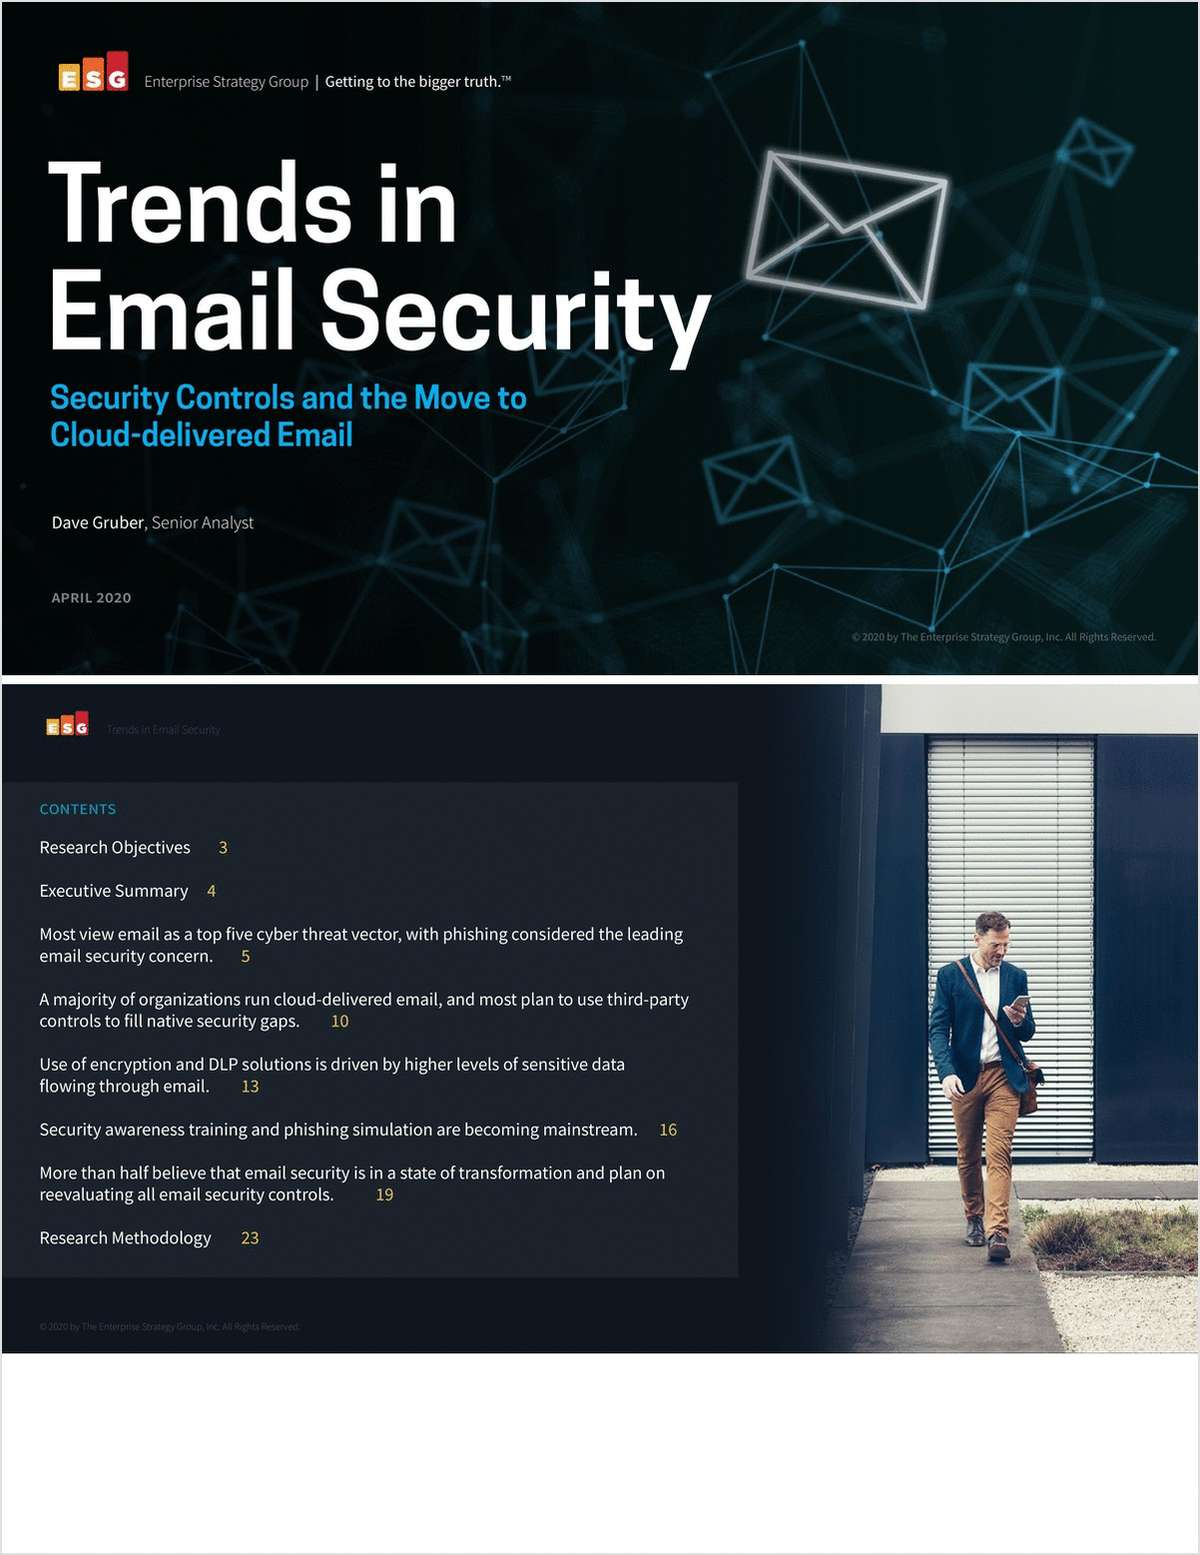 Trends in Email Security